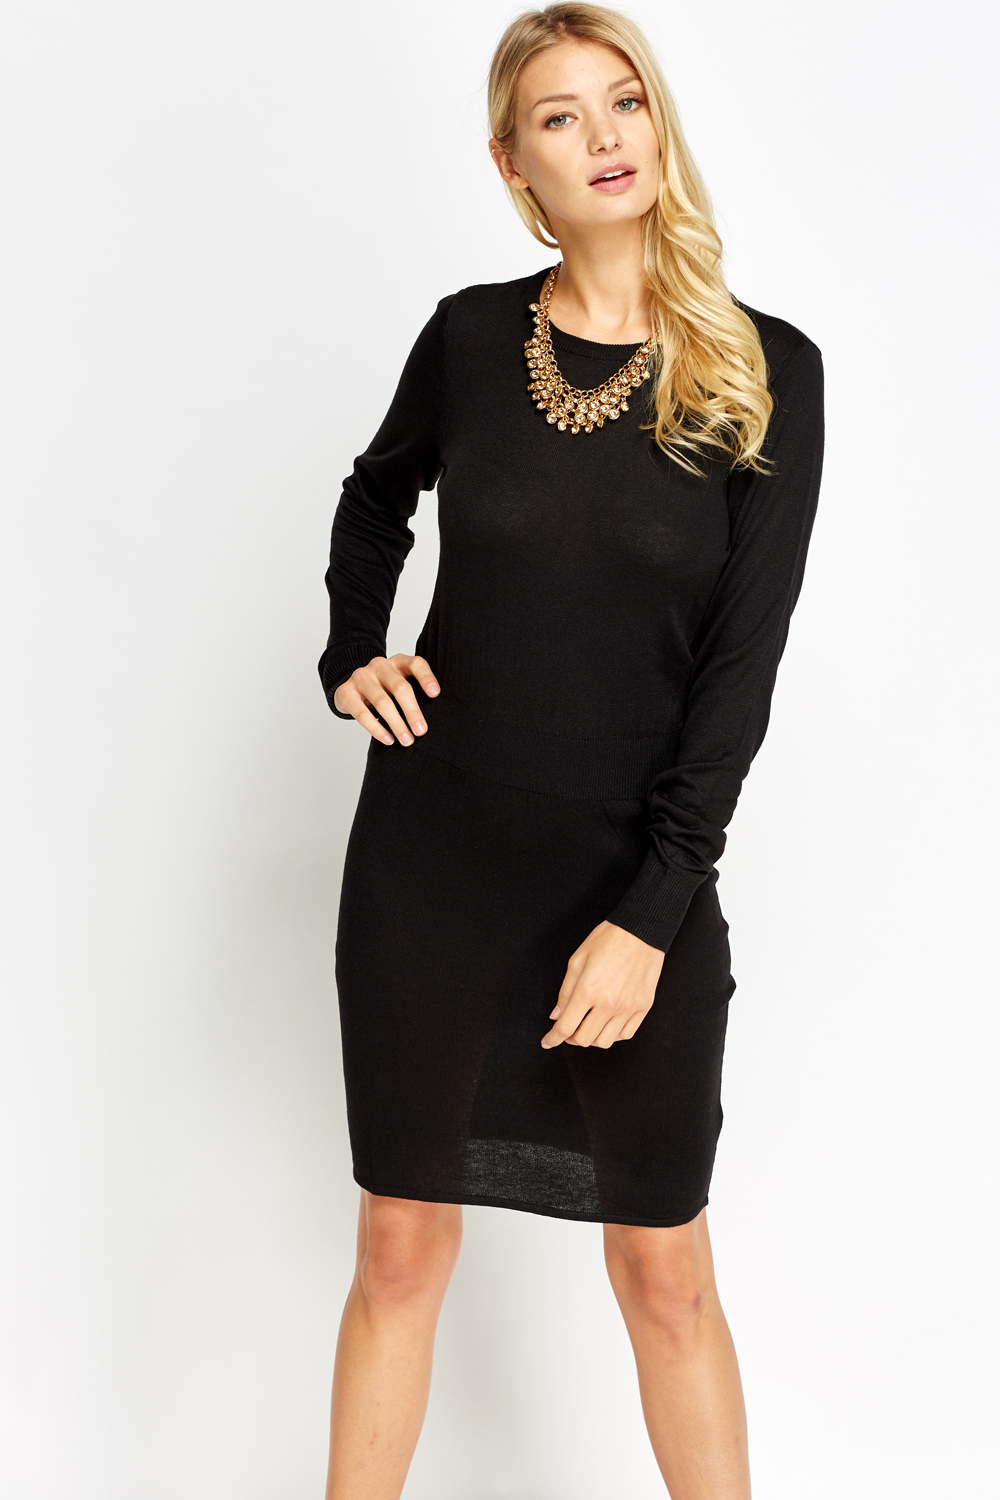 Black Knitted Jumper Dress Uk - Sweater Tunic